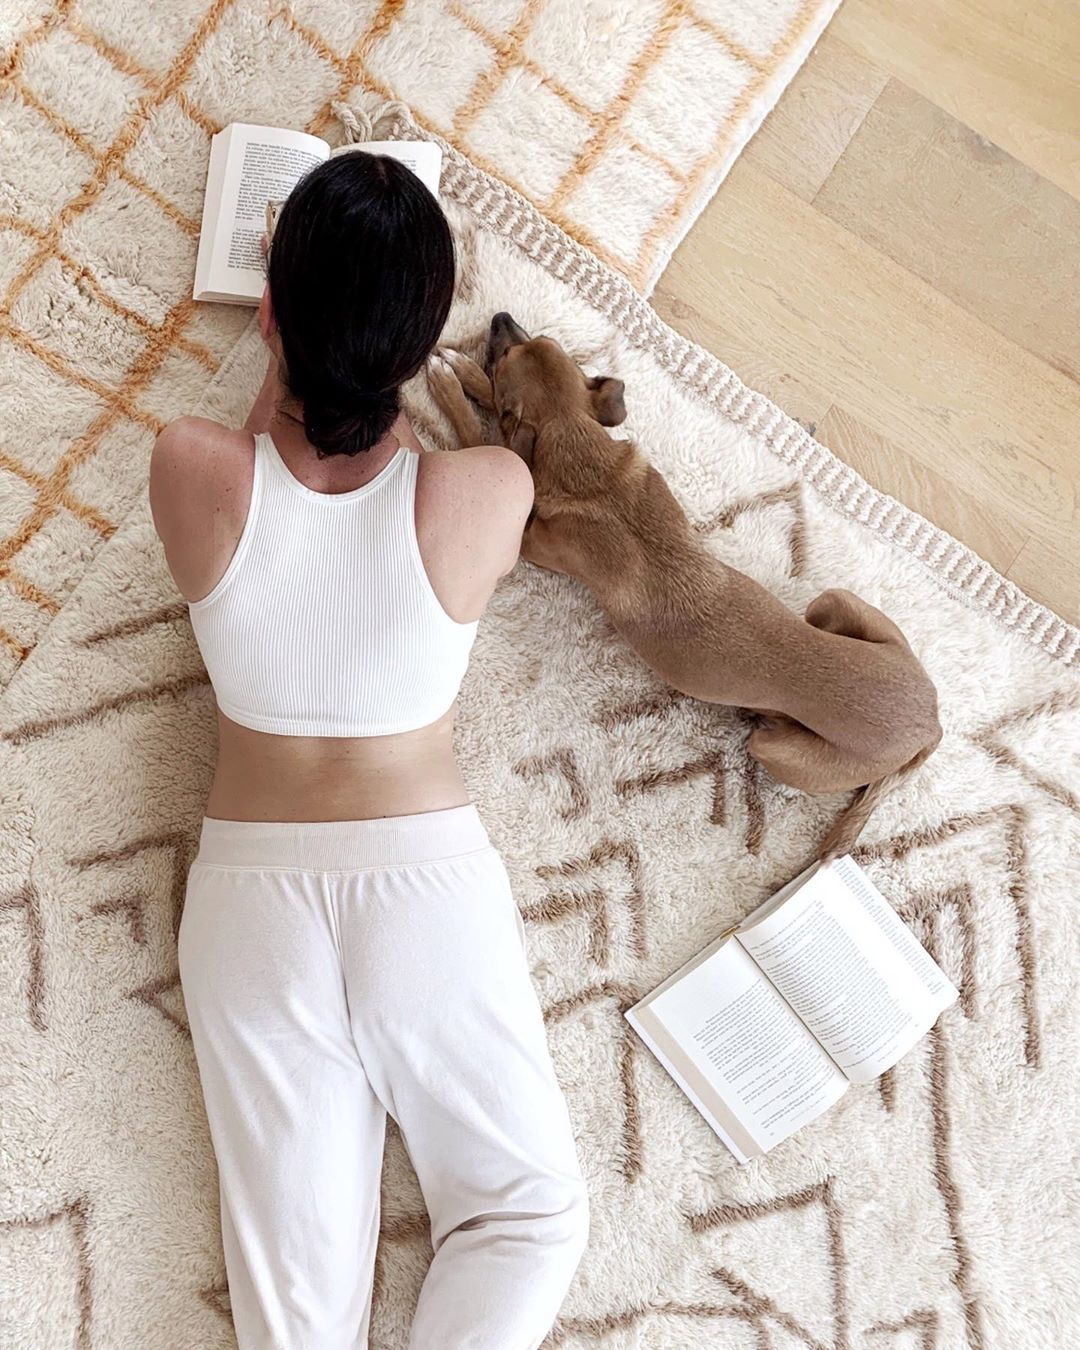 garance dore and her dog